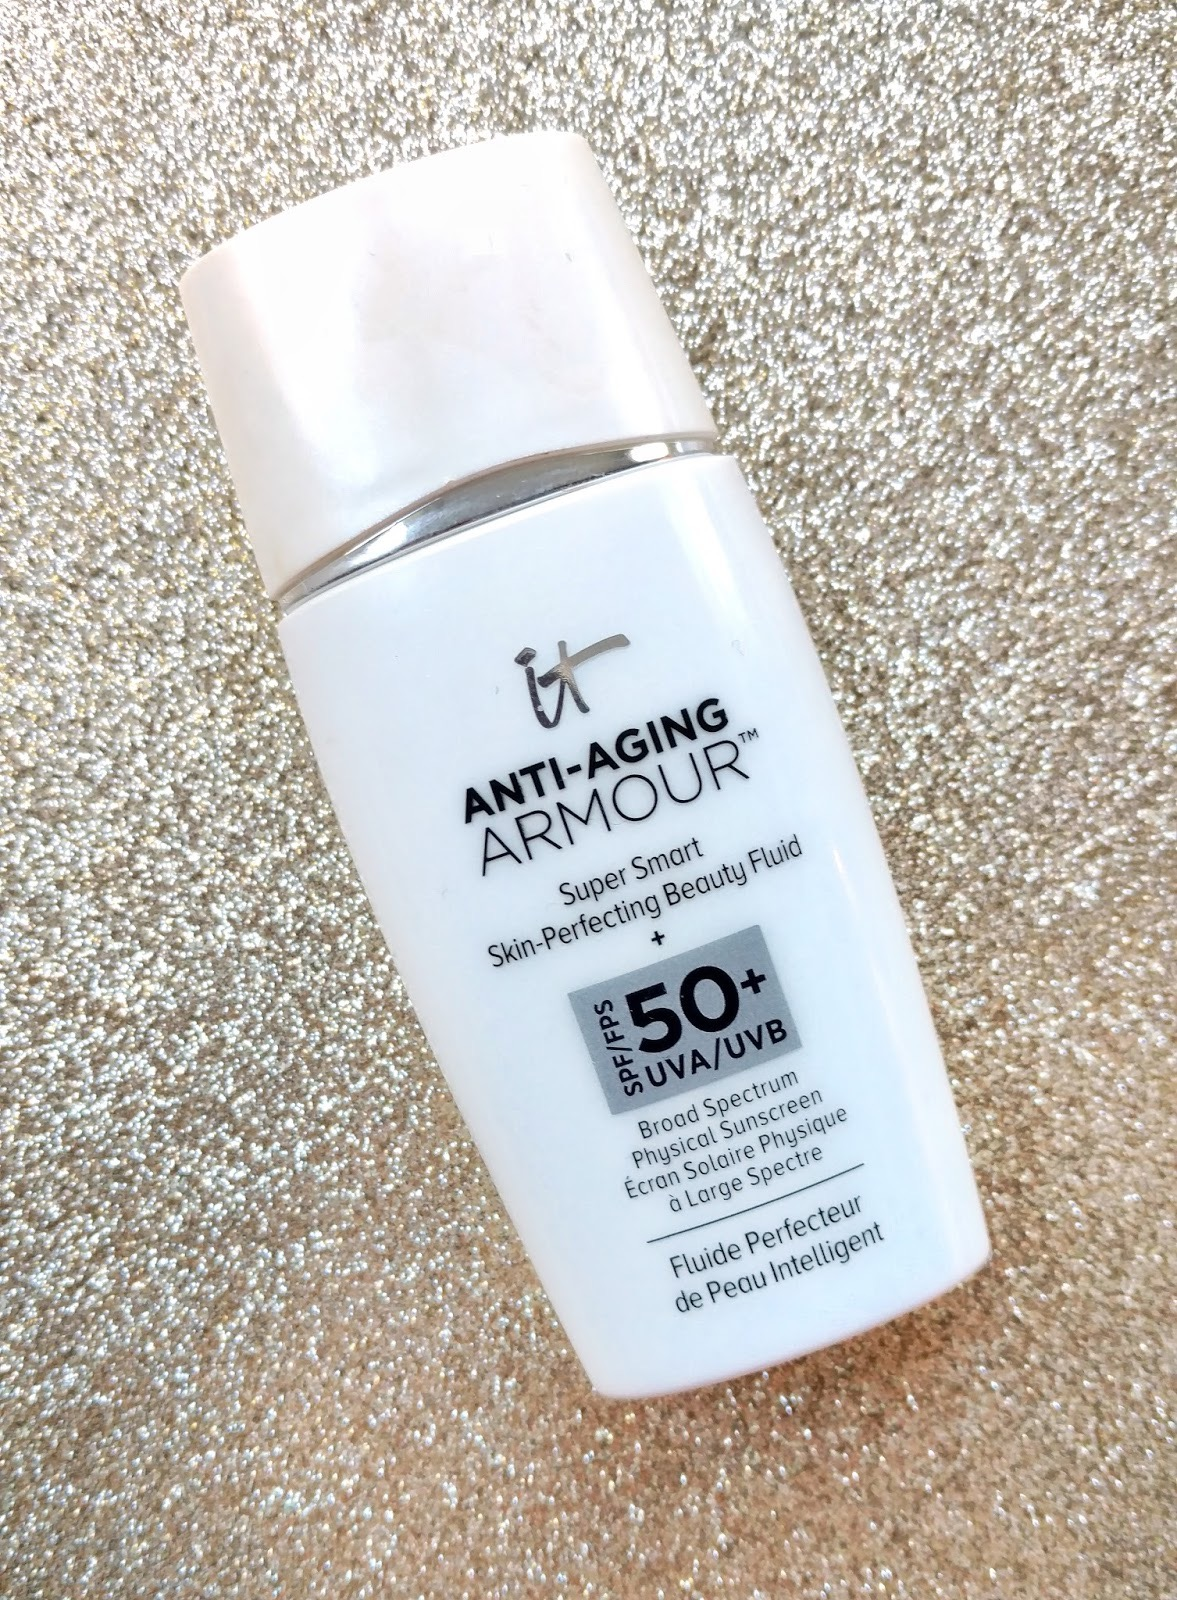 It Cosmetics Anti-Aging Armour Tinted Sunscreen SPF 50+ Super Smart Skin-Perfecting Beauty Fluid Foundation Primer